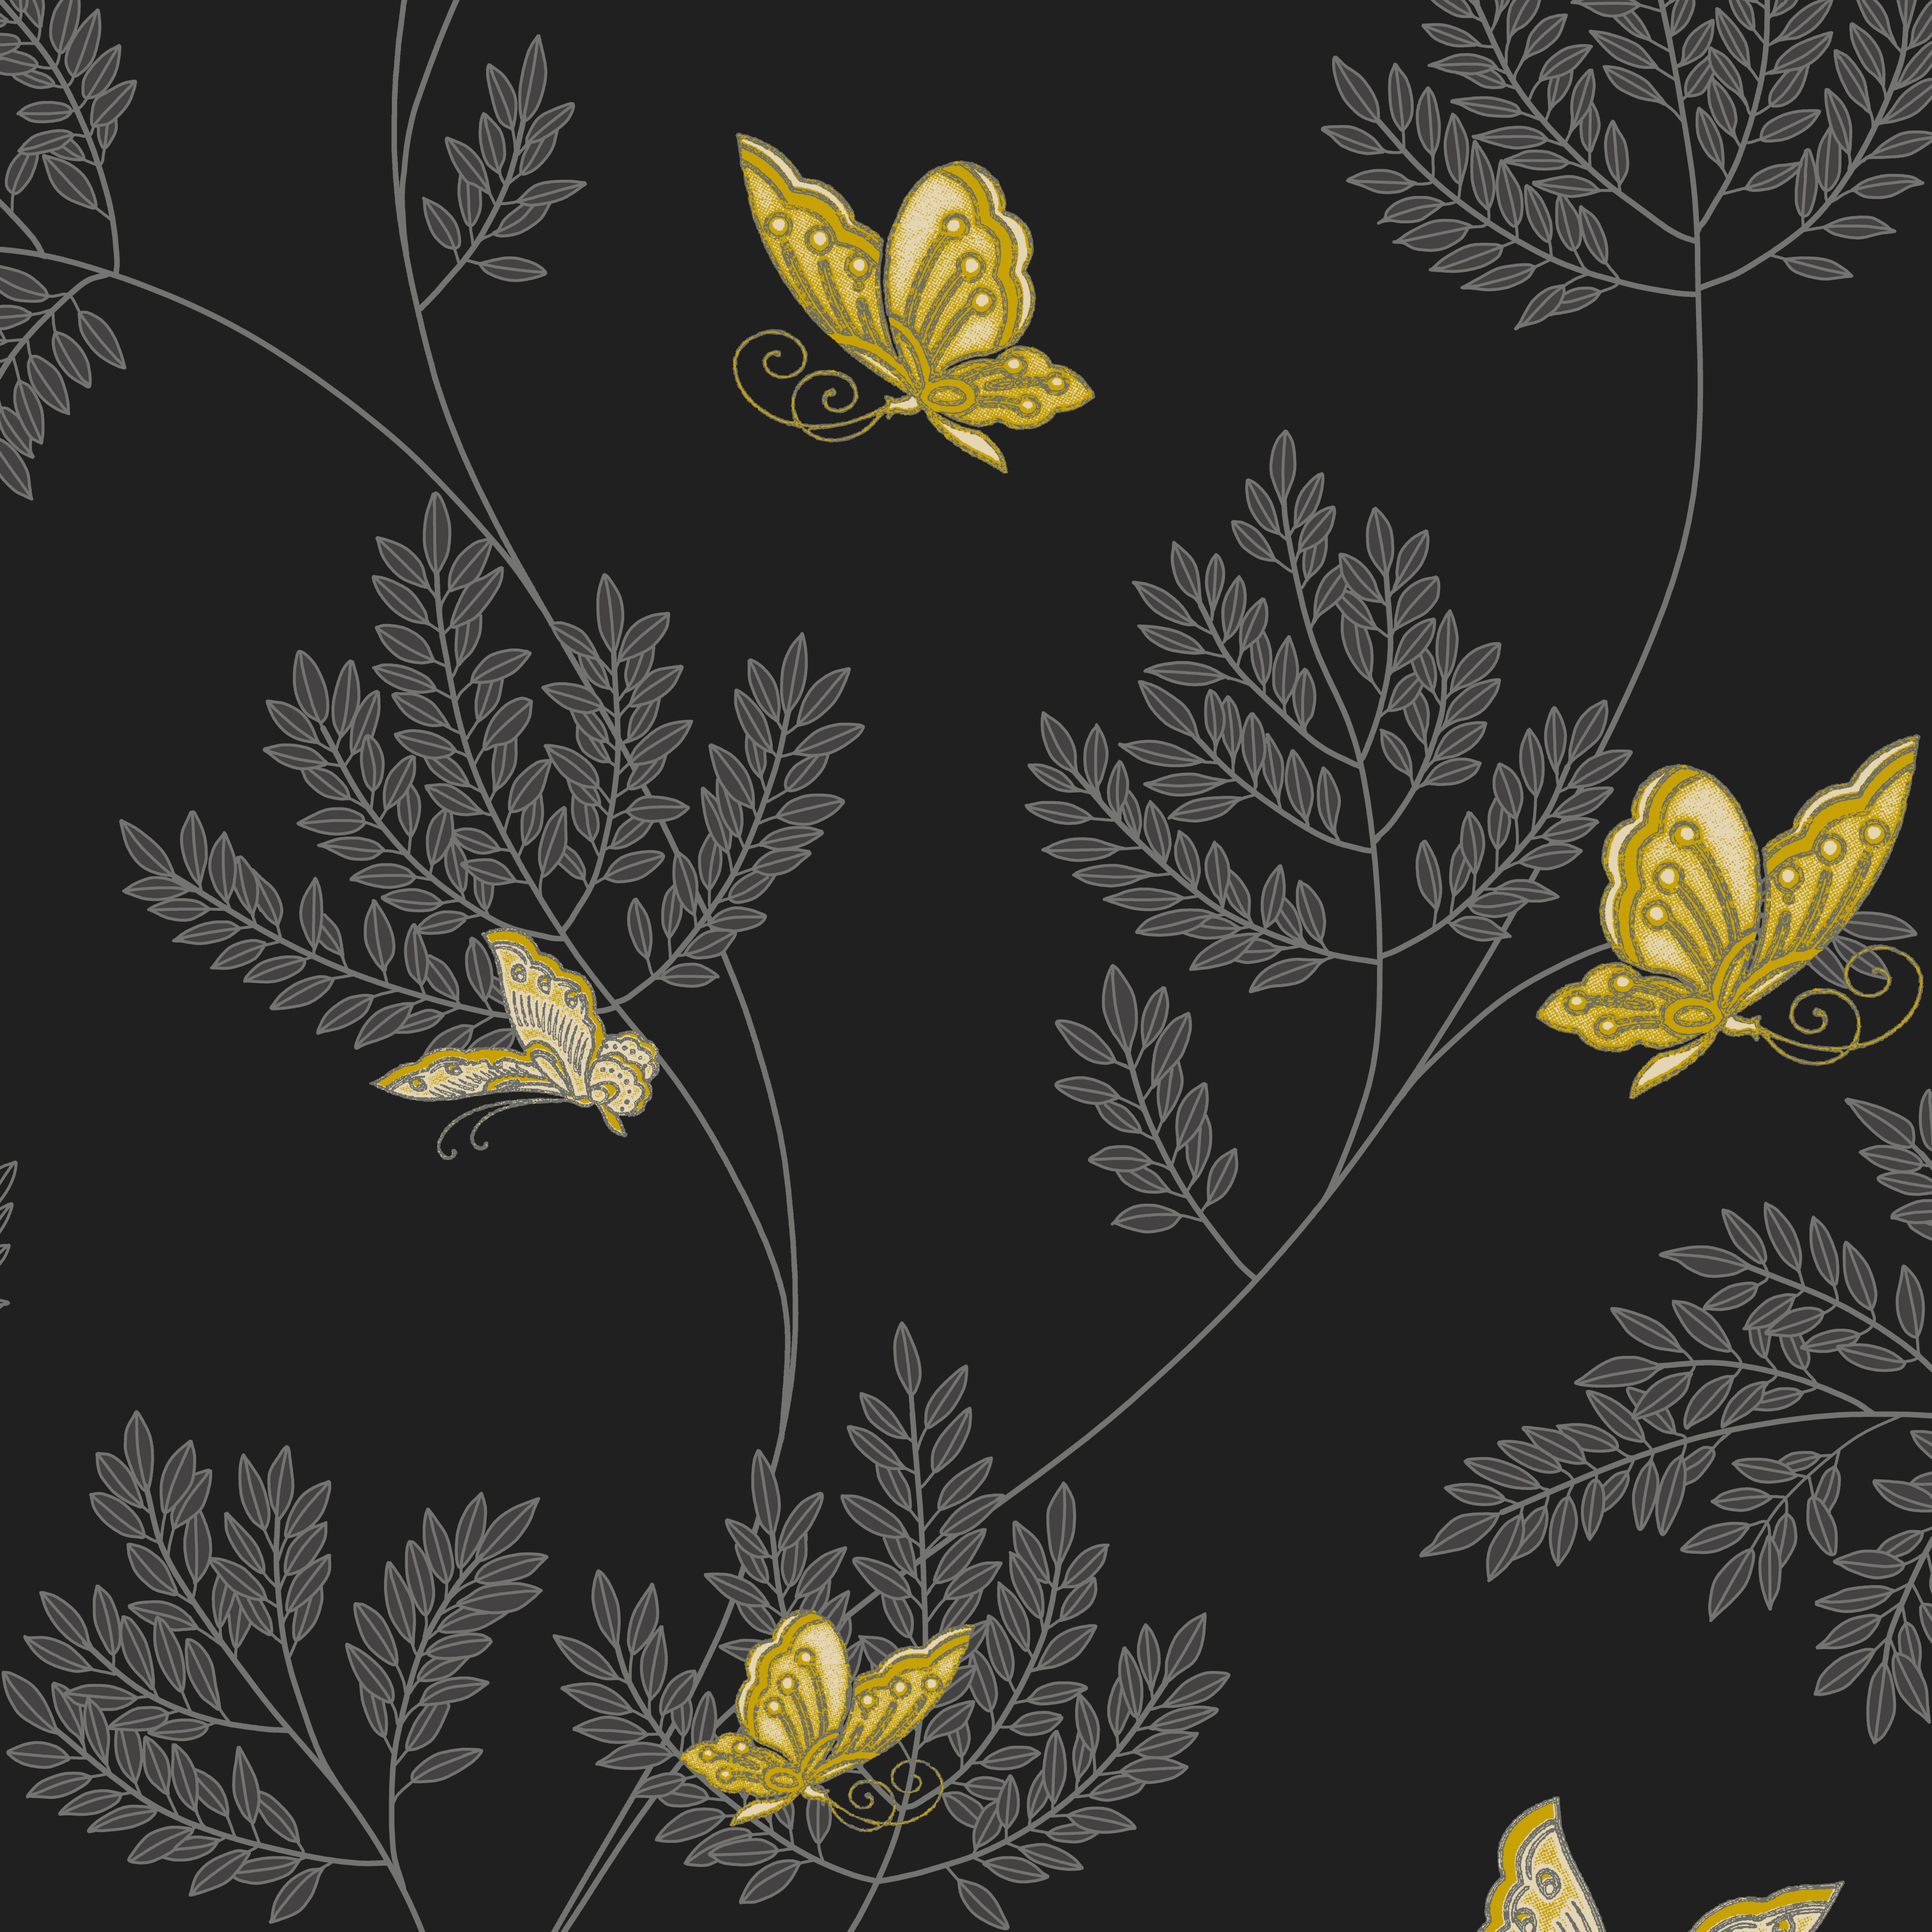 Opera hermione black grey yellow floral butterflies for Black white and grey wallpaper